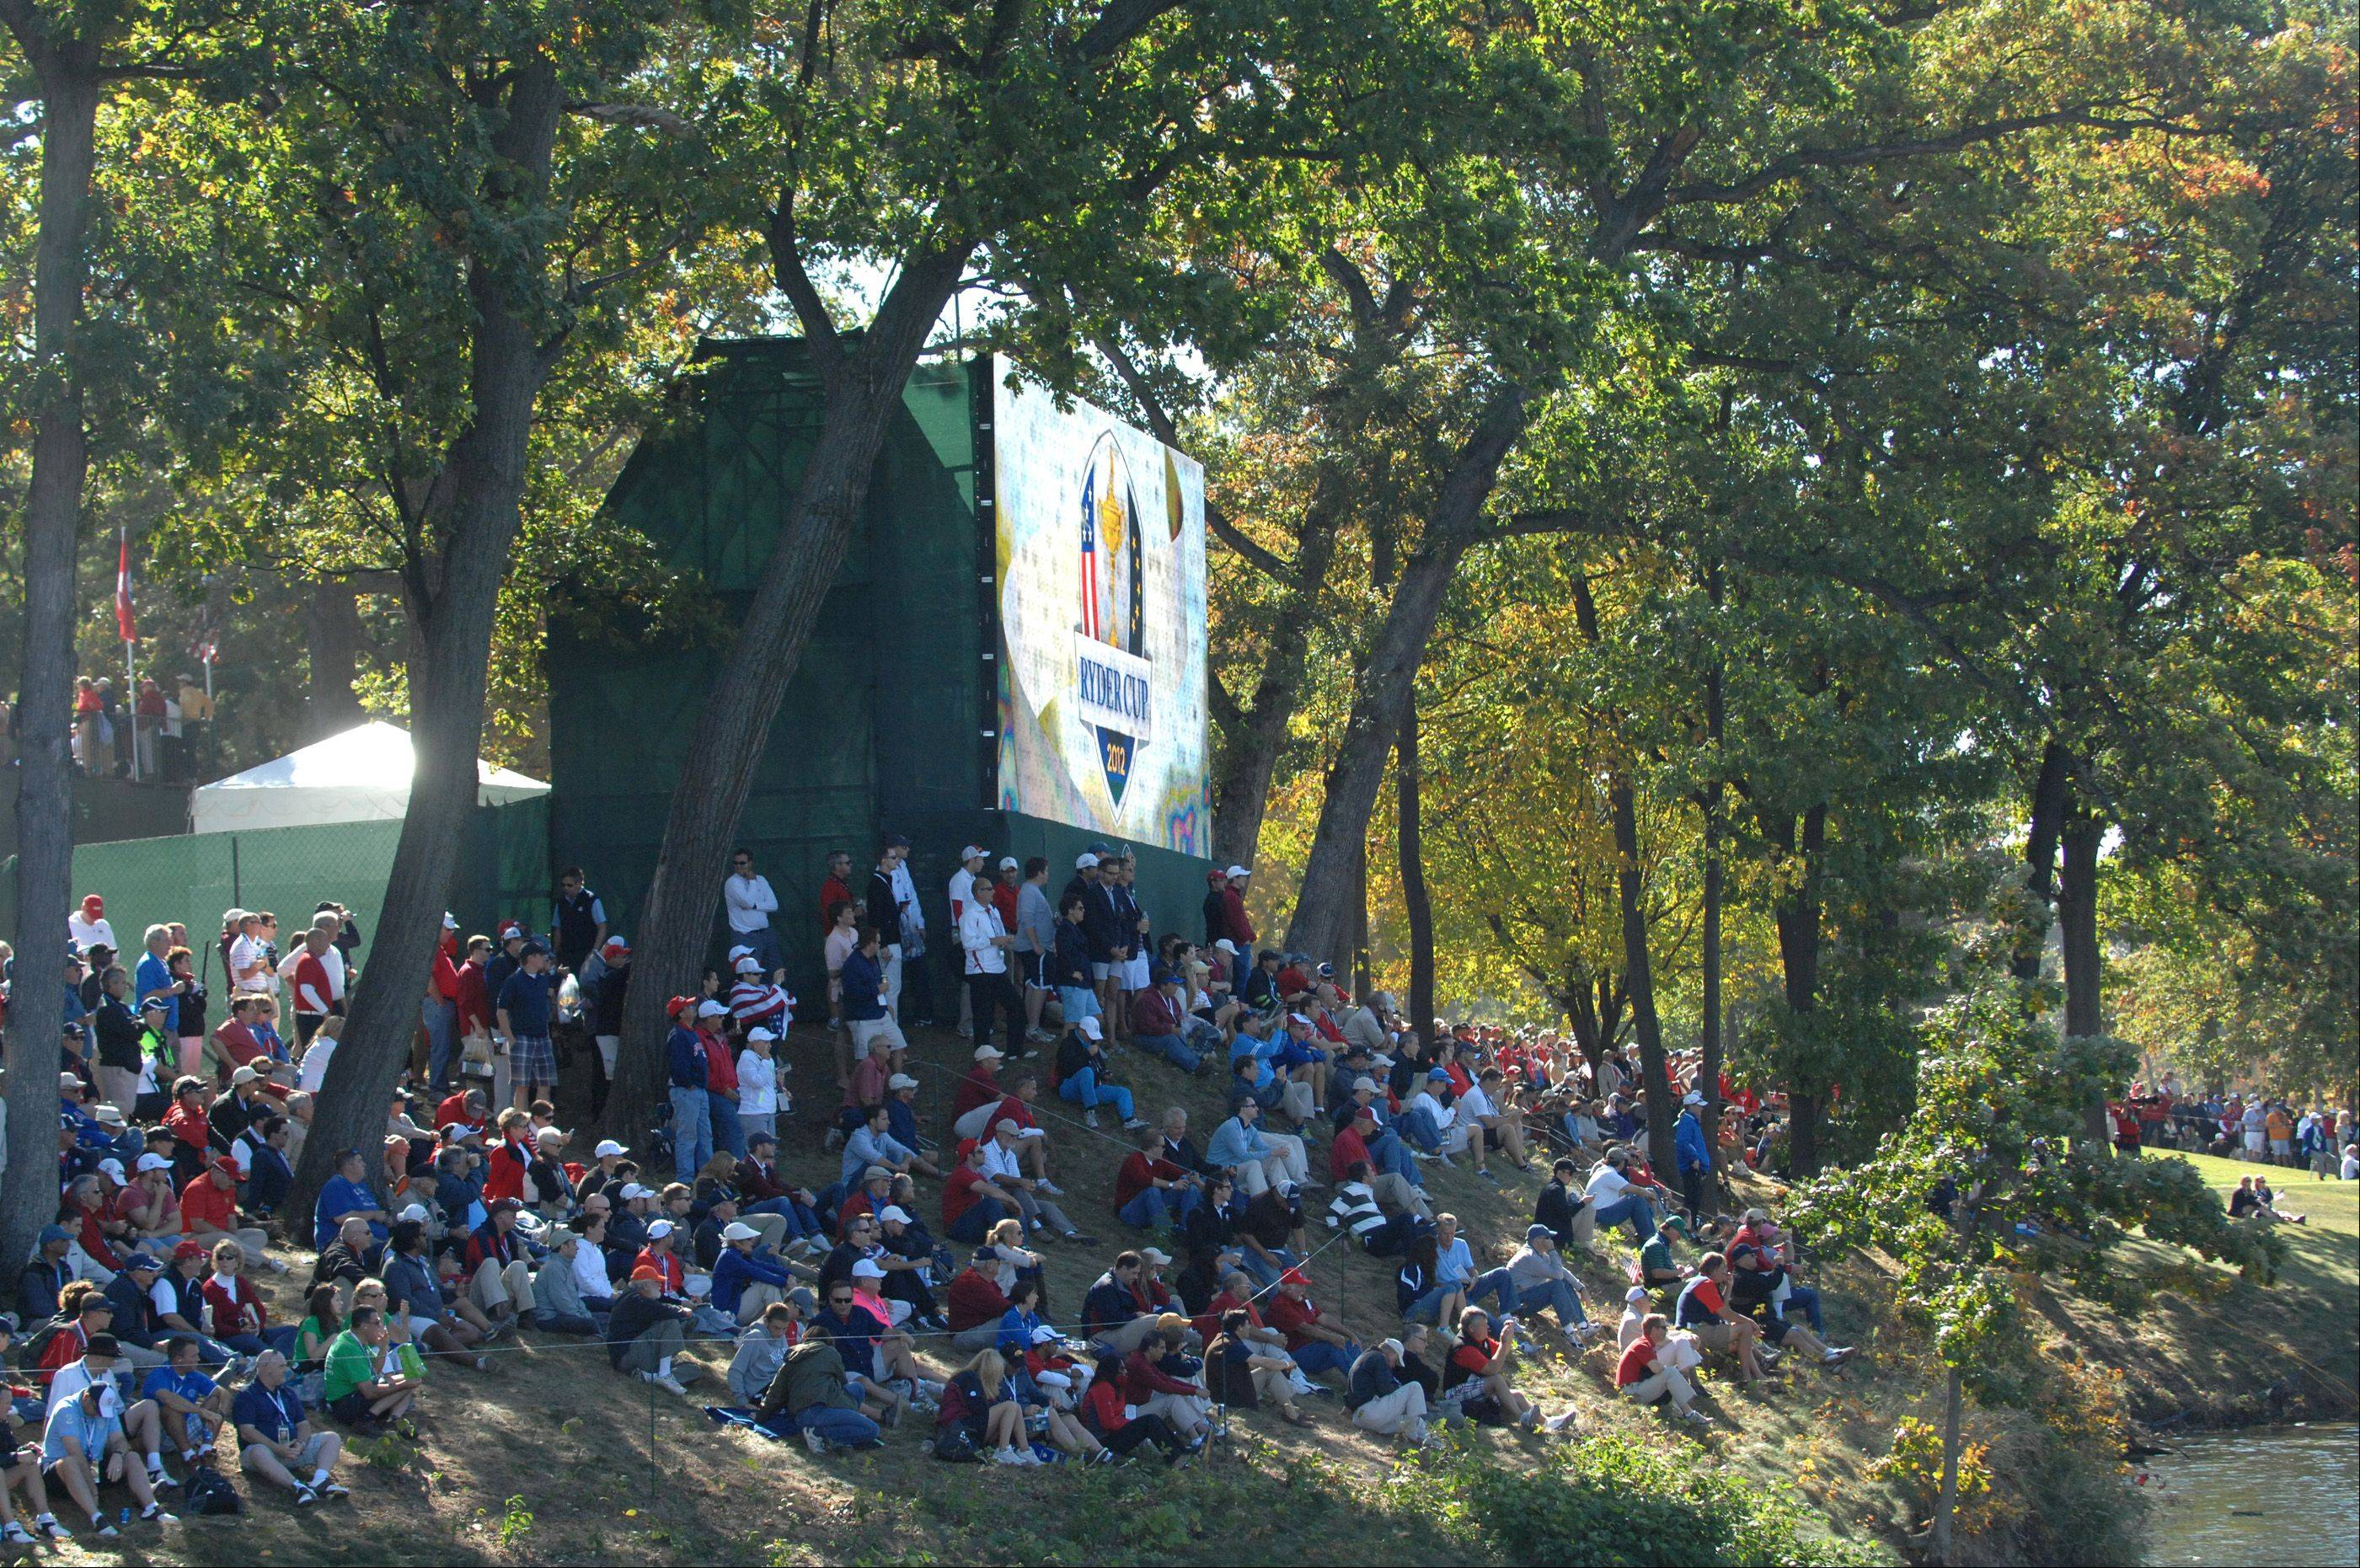 Fans stake out a spot across from the 13 hole Sunday during the final day of the 2012 Ryder Cup at Medinah Country Club.